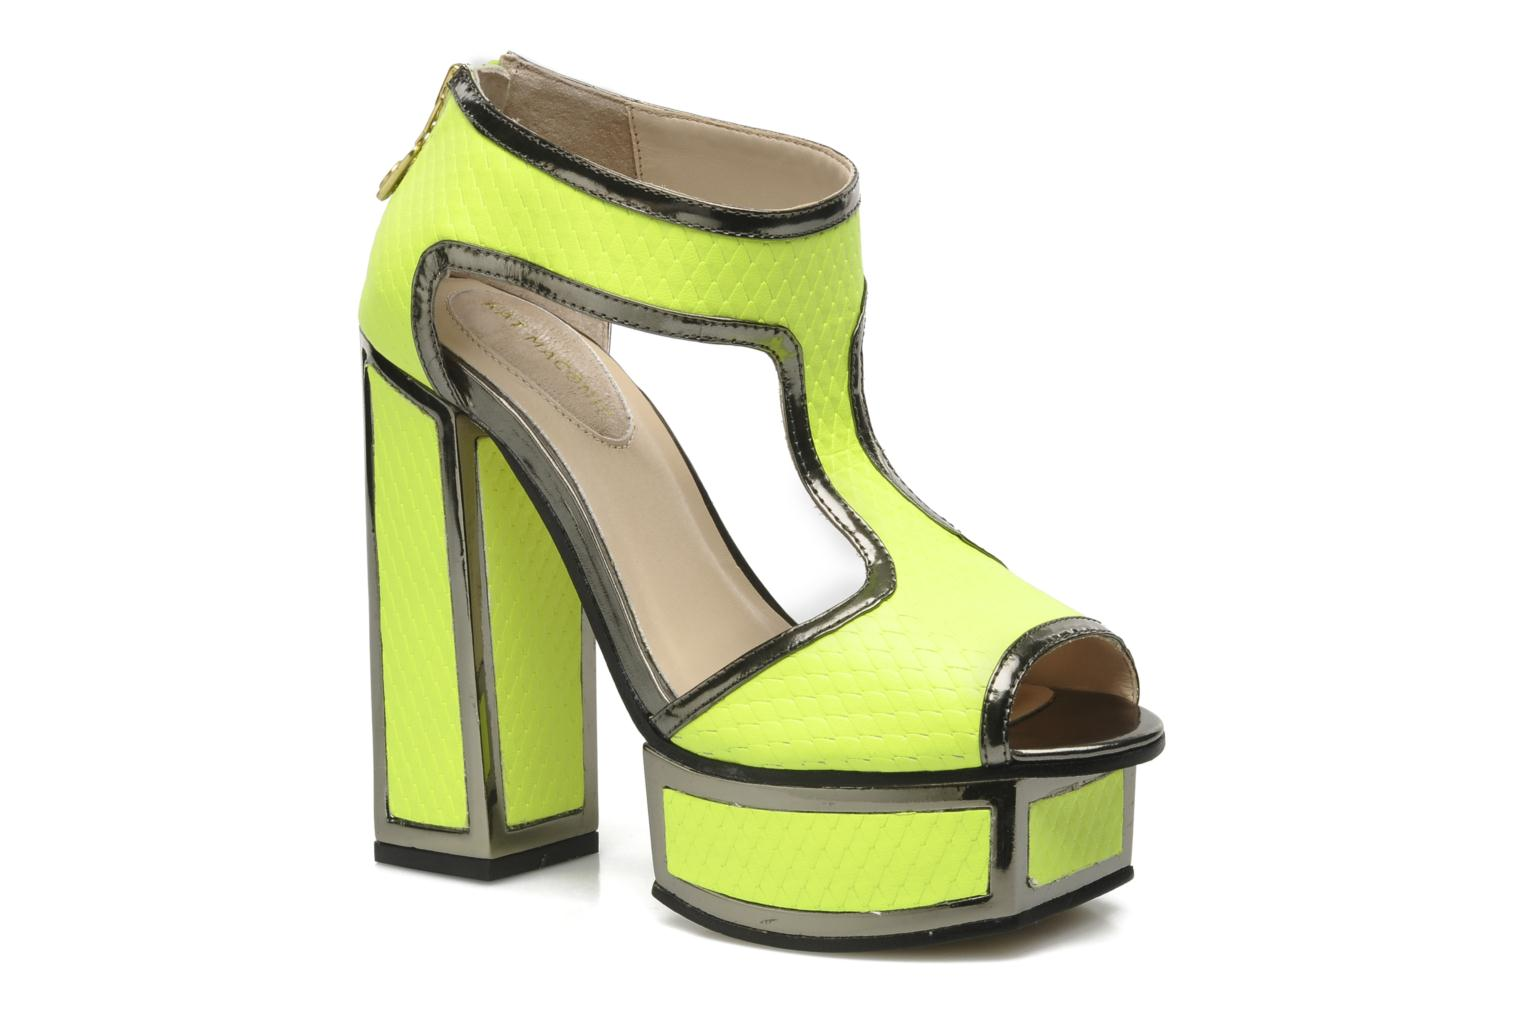 ABIGAIL by Kat Maconie (Yellow) | Sarenza UK | Your Sandals ABIGAIL Kat Maconie delivered for Free